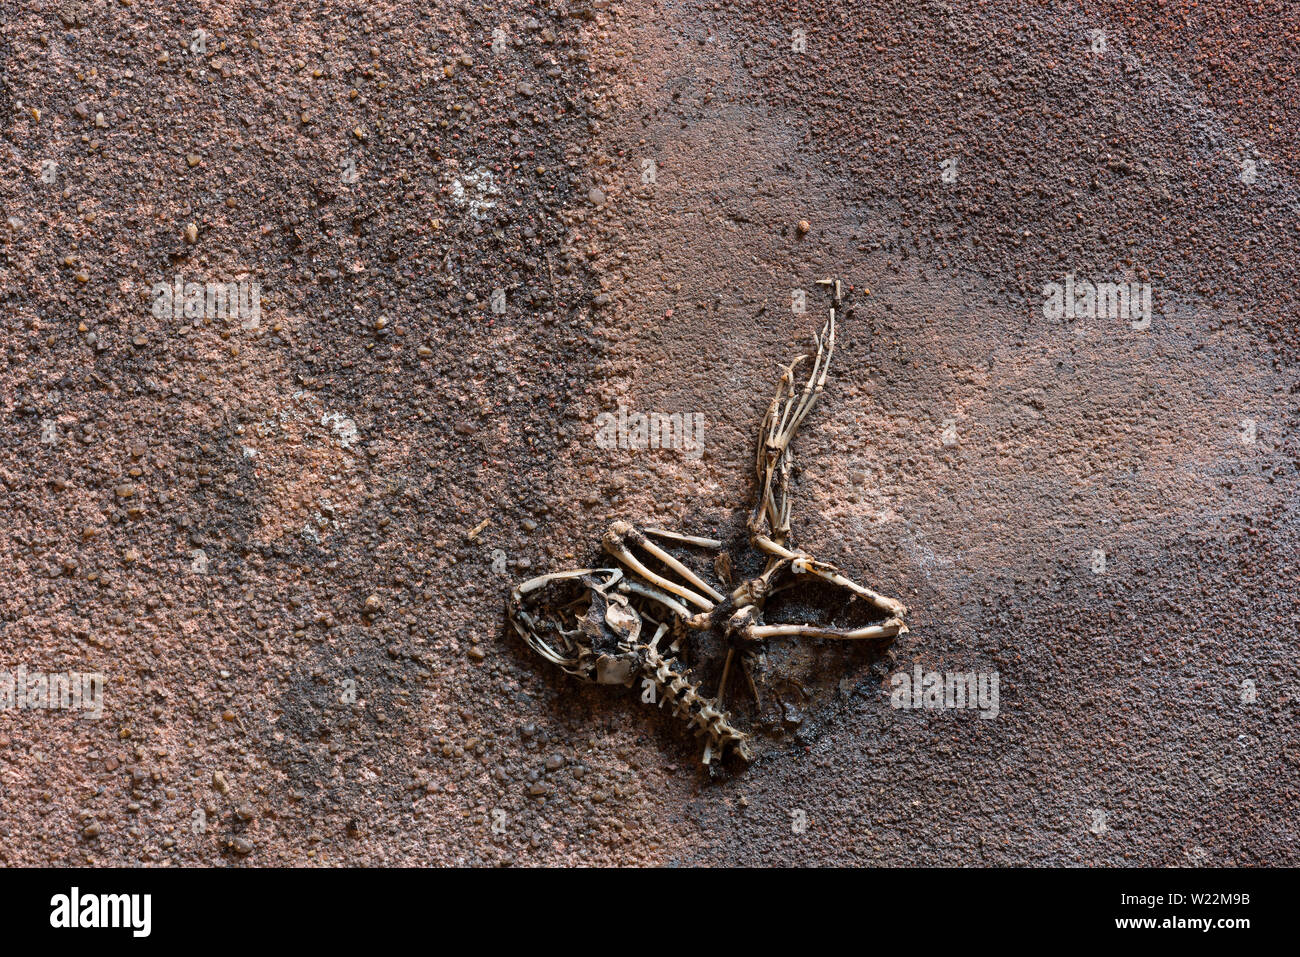 Skeleton remains of common frog which must have hibernated or become trapped between reclaimed marley roof tiles like a fossil in sediment layers - Stock Image